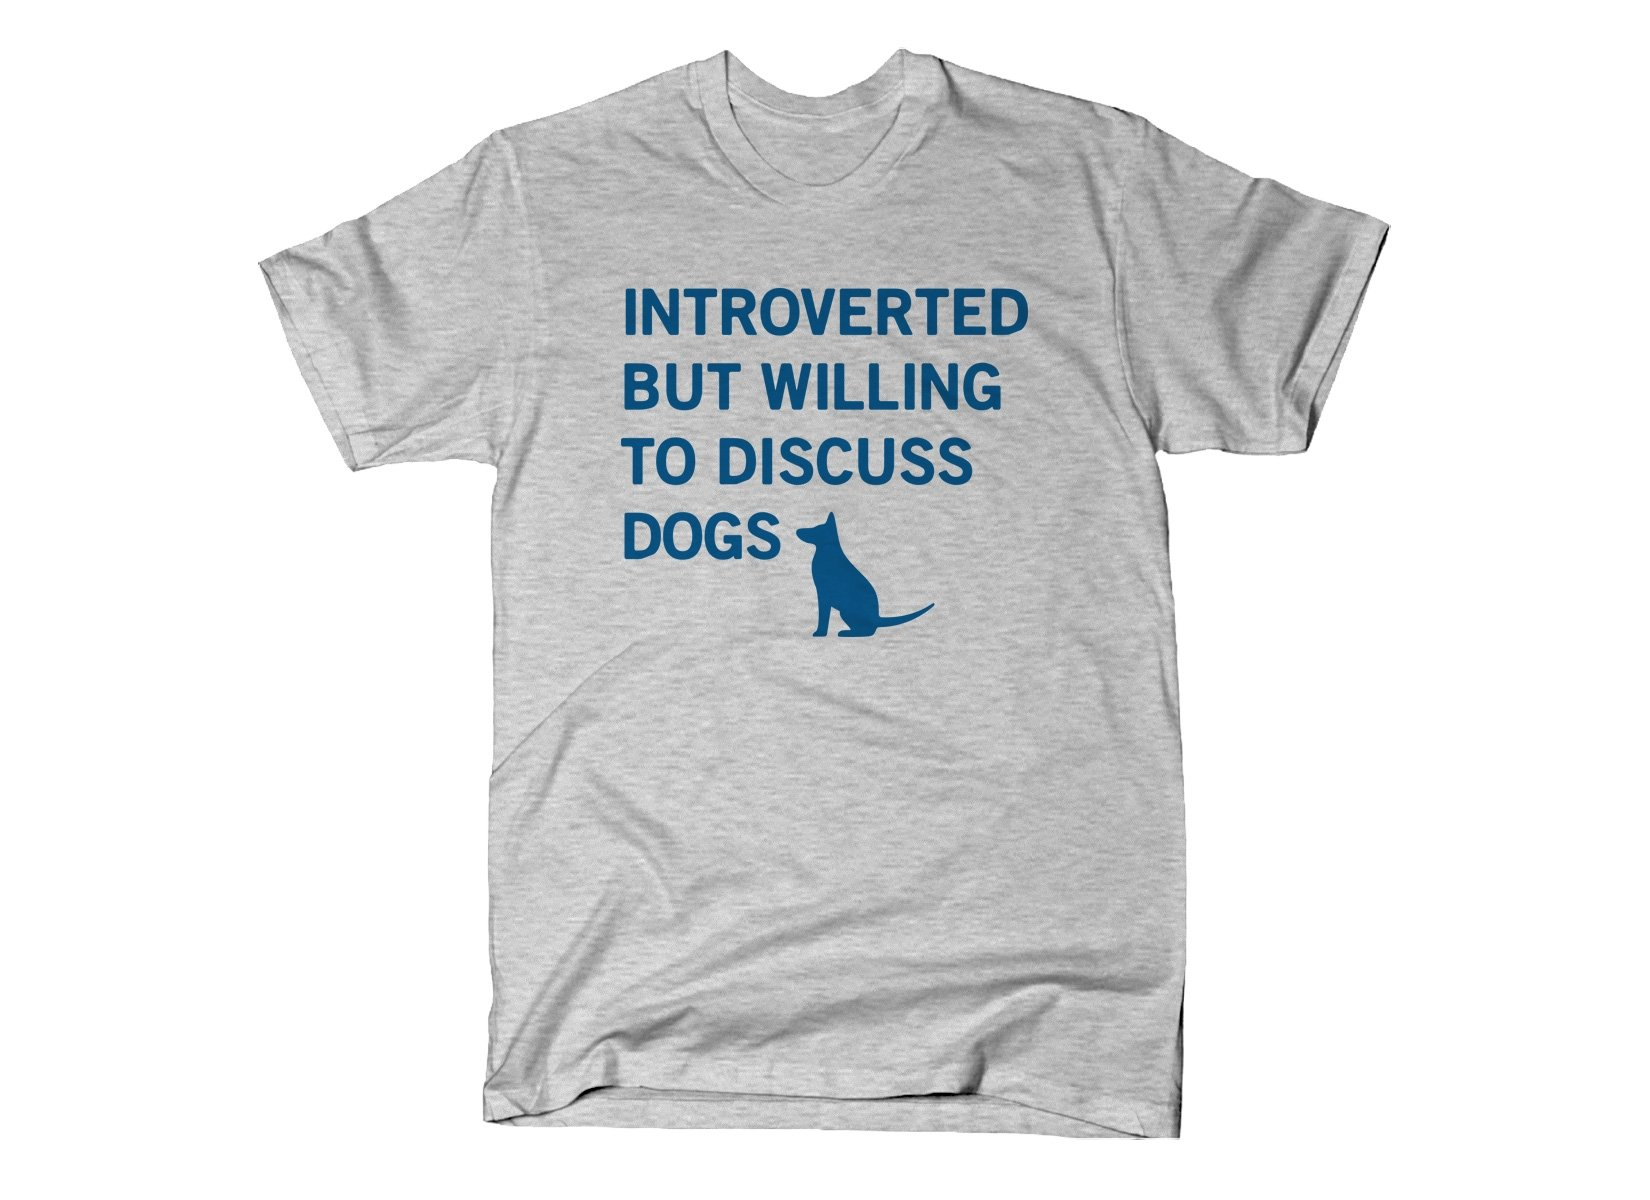 Introverted But Willing To Discuss Dogs on Mens T-Shirt